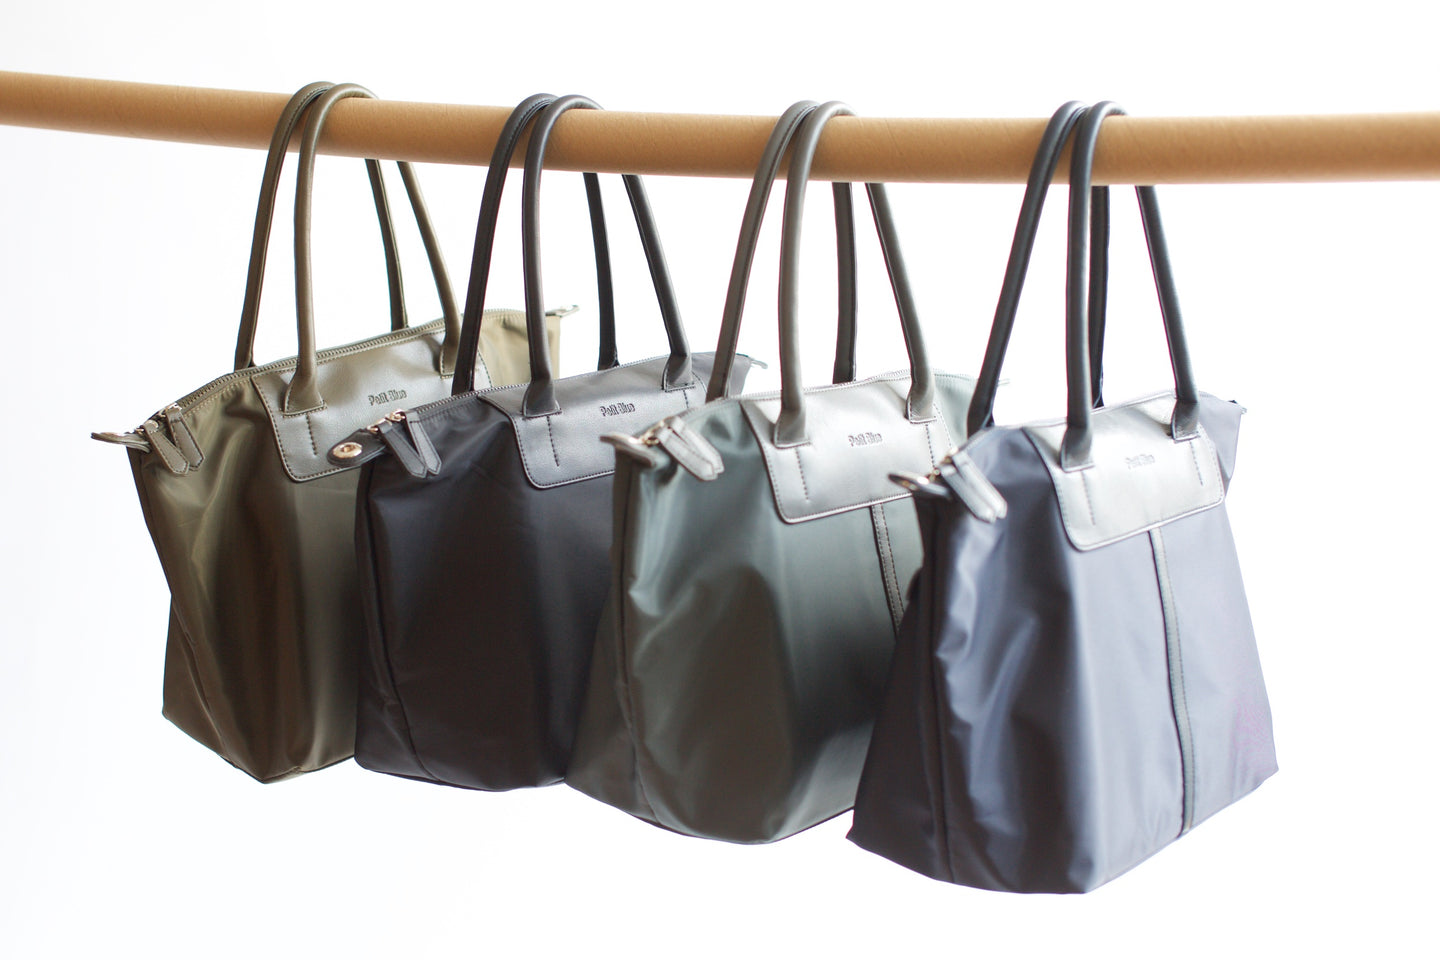 Original Shoulder Bags